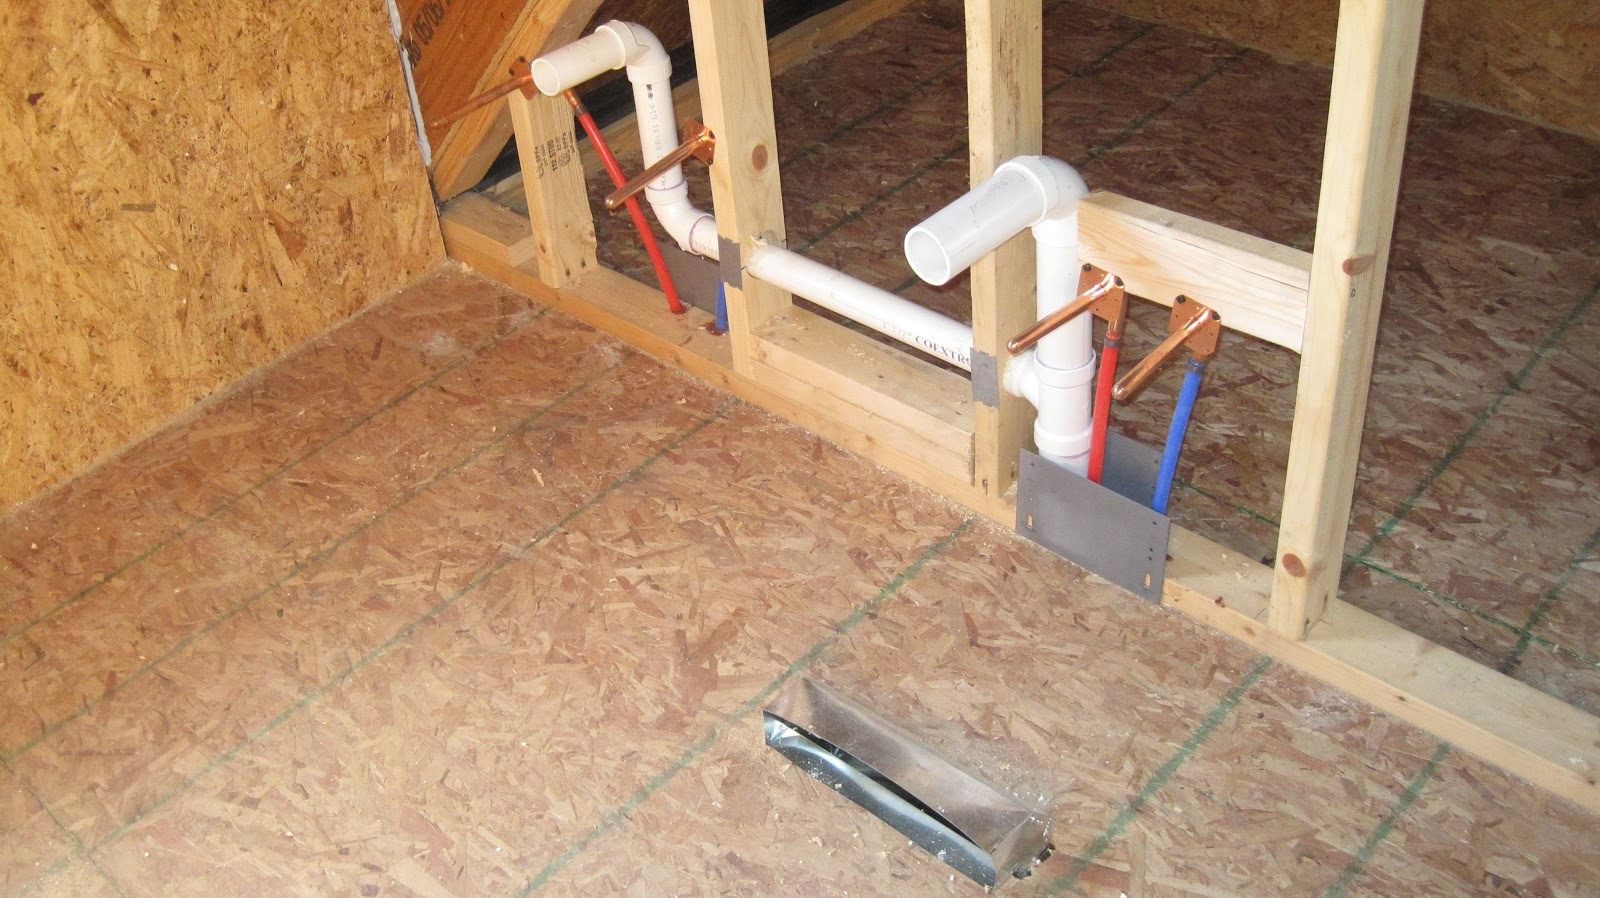 Pex Plumbing Diagram Bathroom 1999 Ford F150 Belt I Married A Tree Hugger Inside And Out